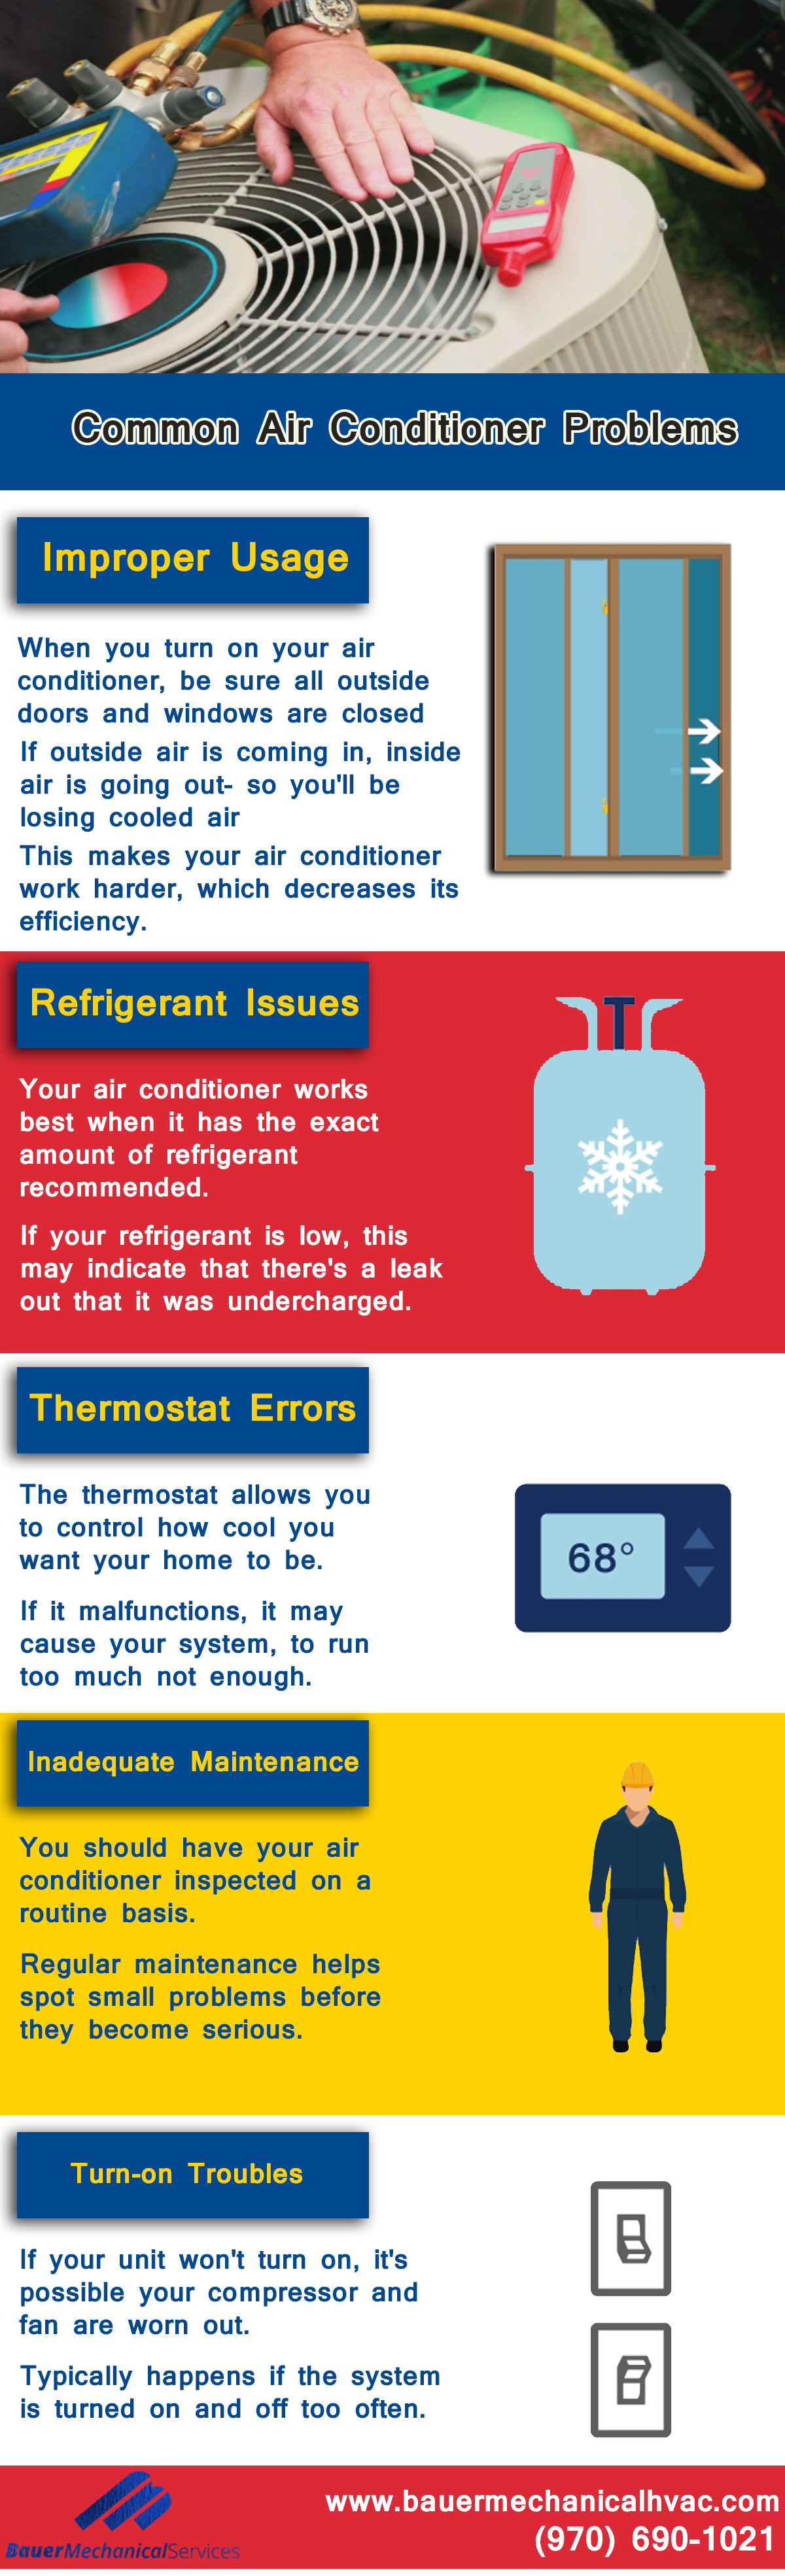 Common Air Conditioner Problems Improper Usage When You Turn On